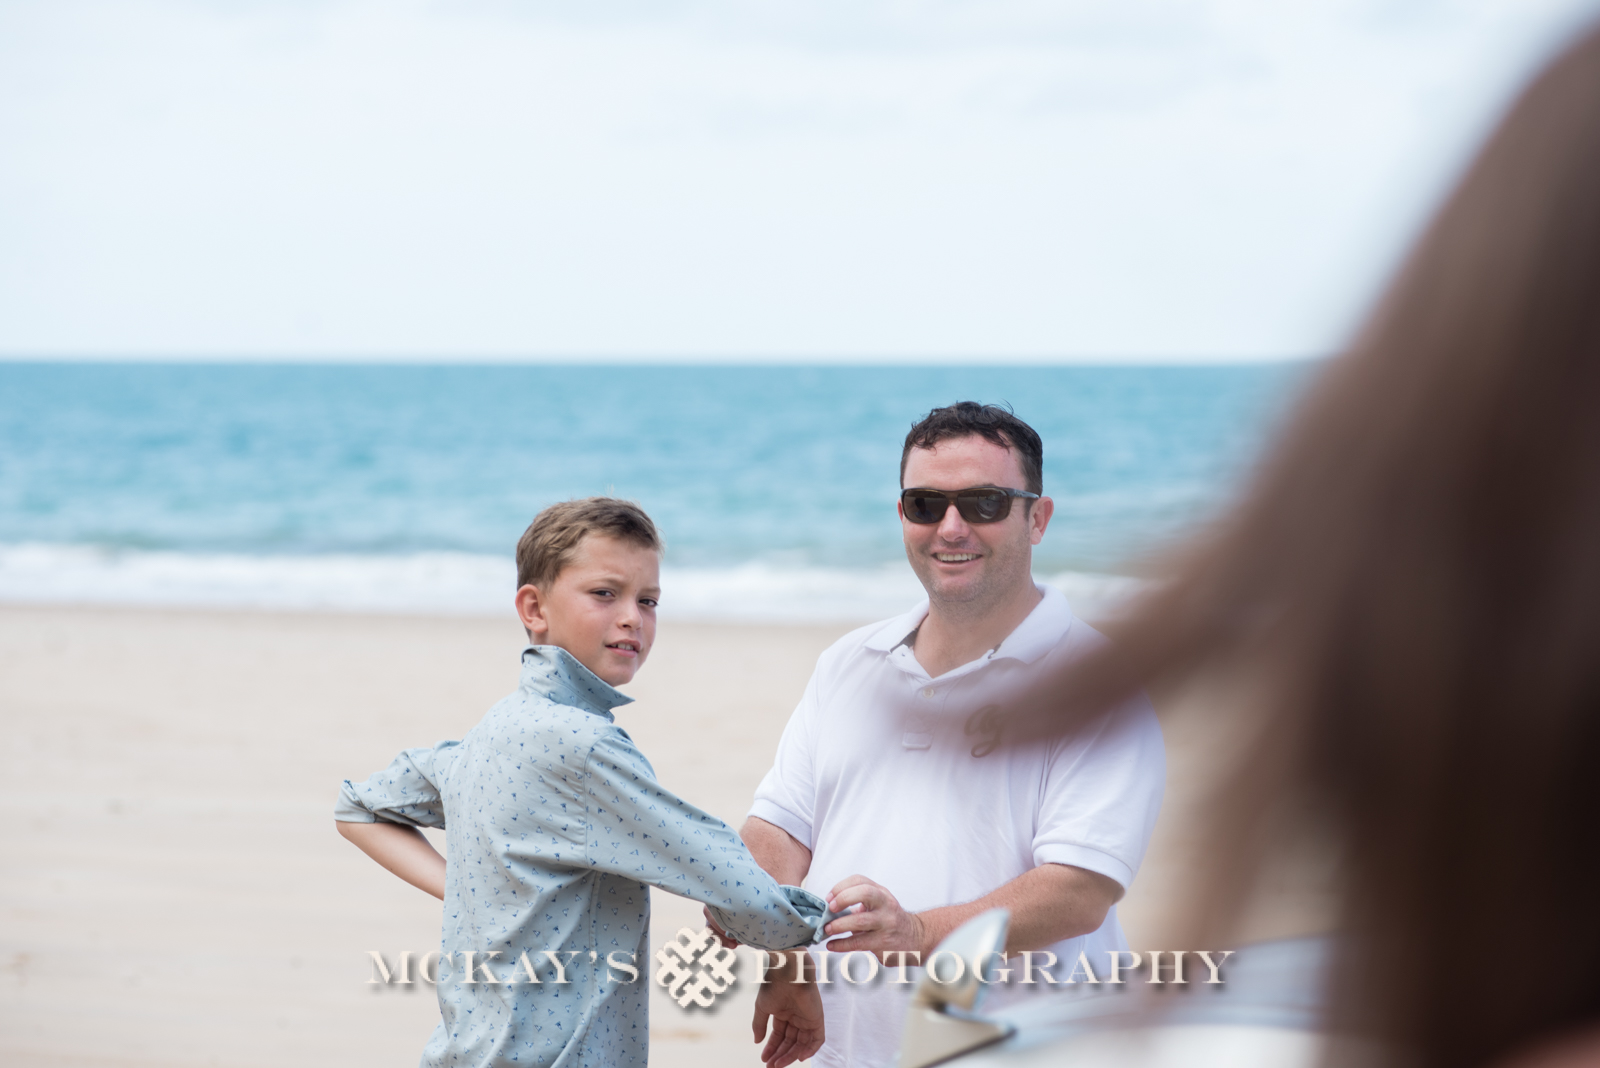 destination wedding photographer Heather McKay in Mozambique Africa